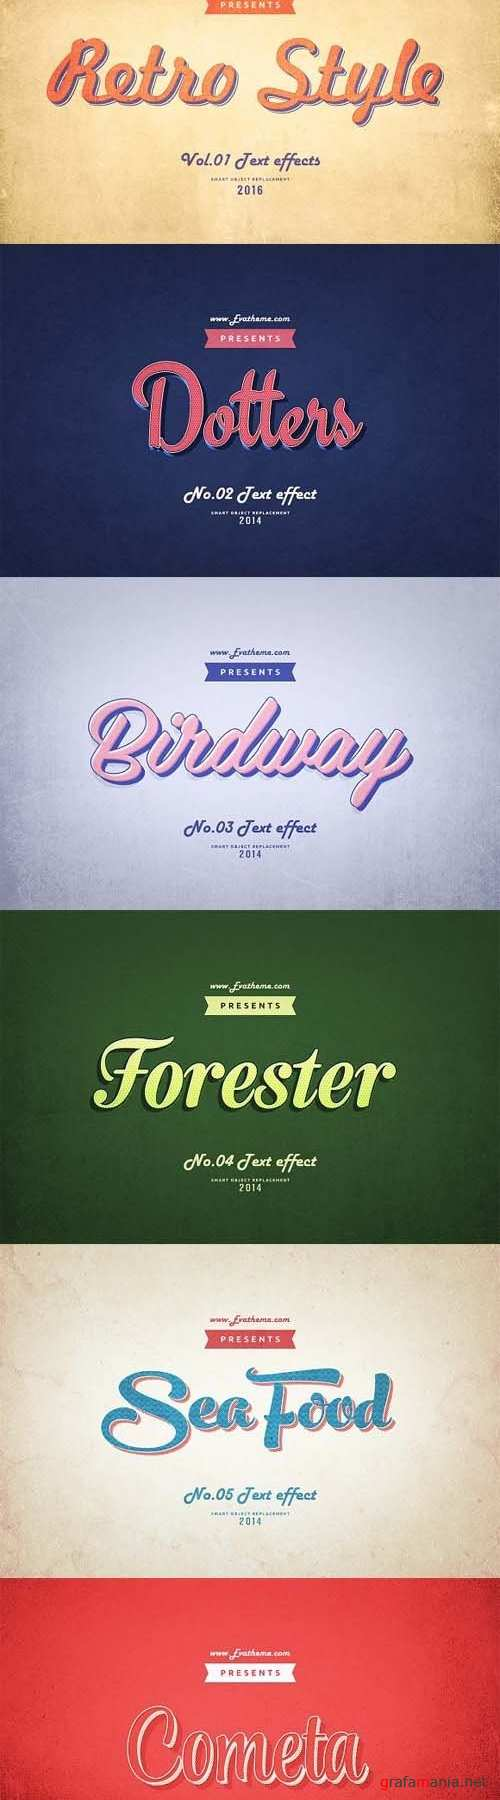 Retro Style Text Effects Vol.1 - 1214494